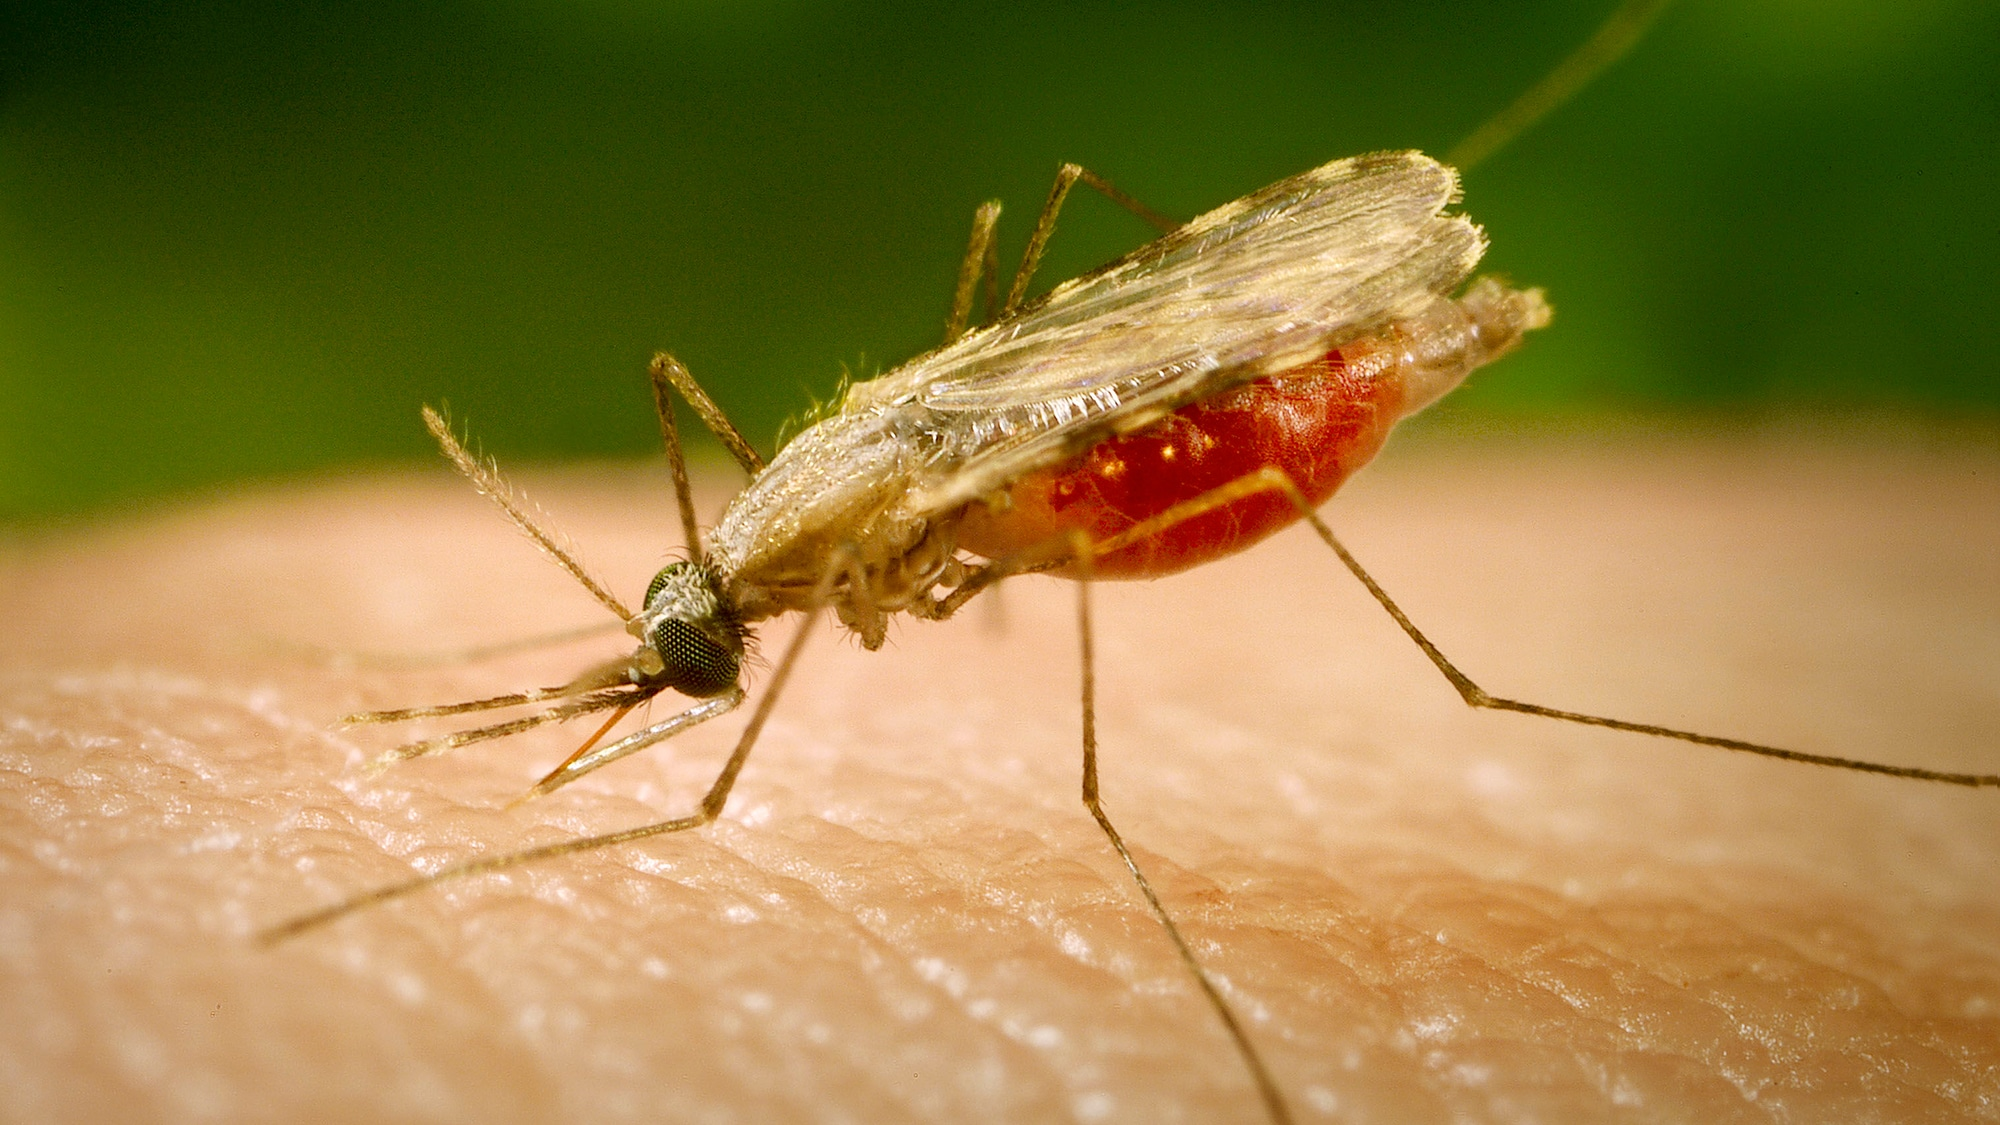 This close-up photograph shows the Anopheles minimus mosquito, a malaria vector of the Orient, feeding on a human host. An. M